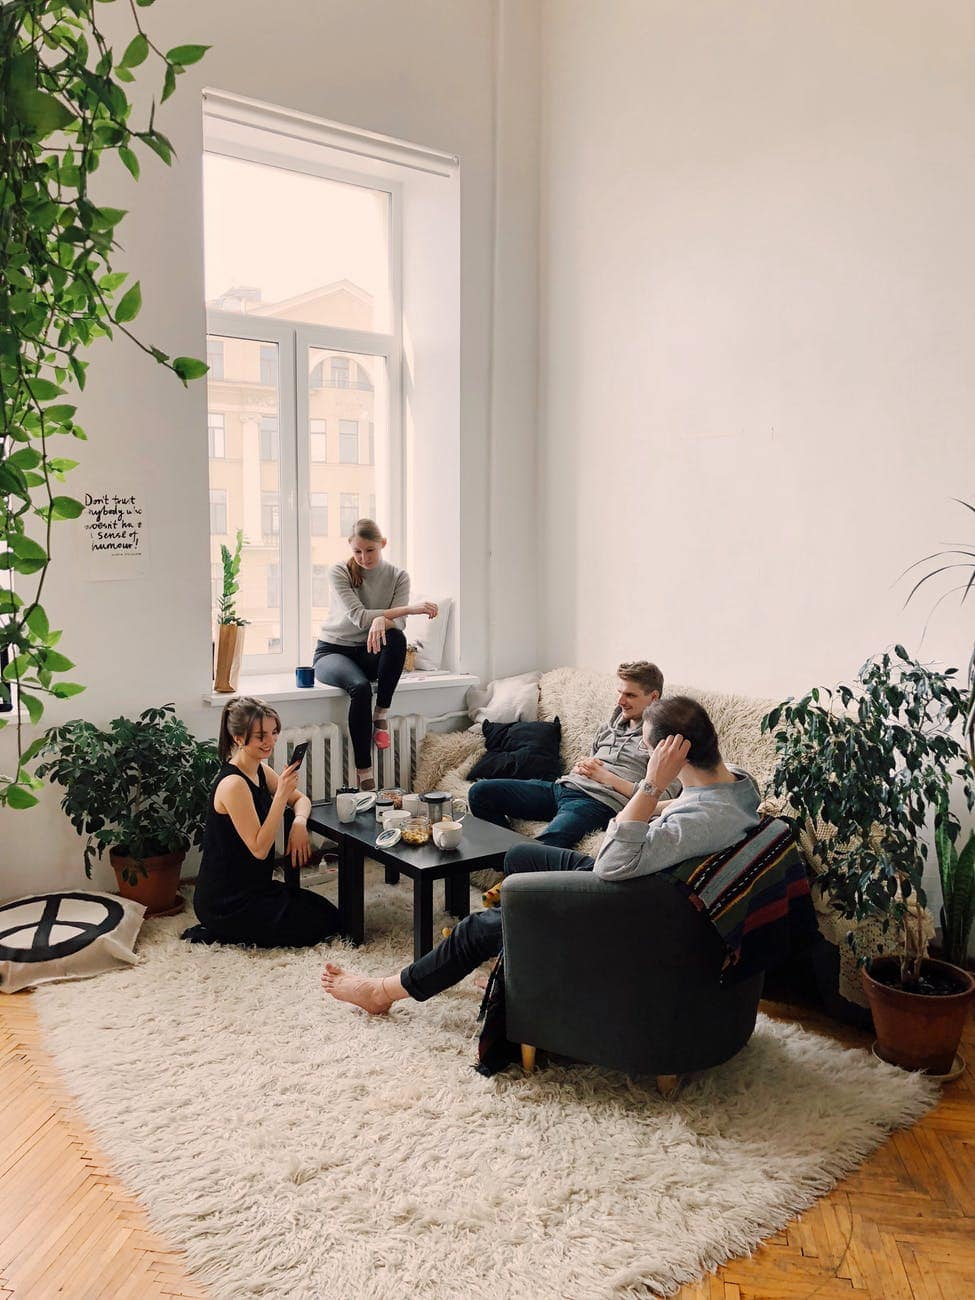 People gathered inside a living room with lots of plants